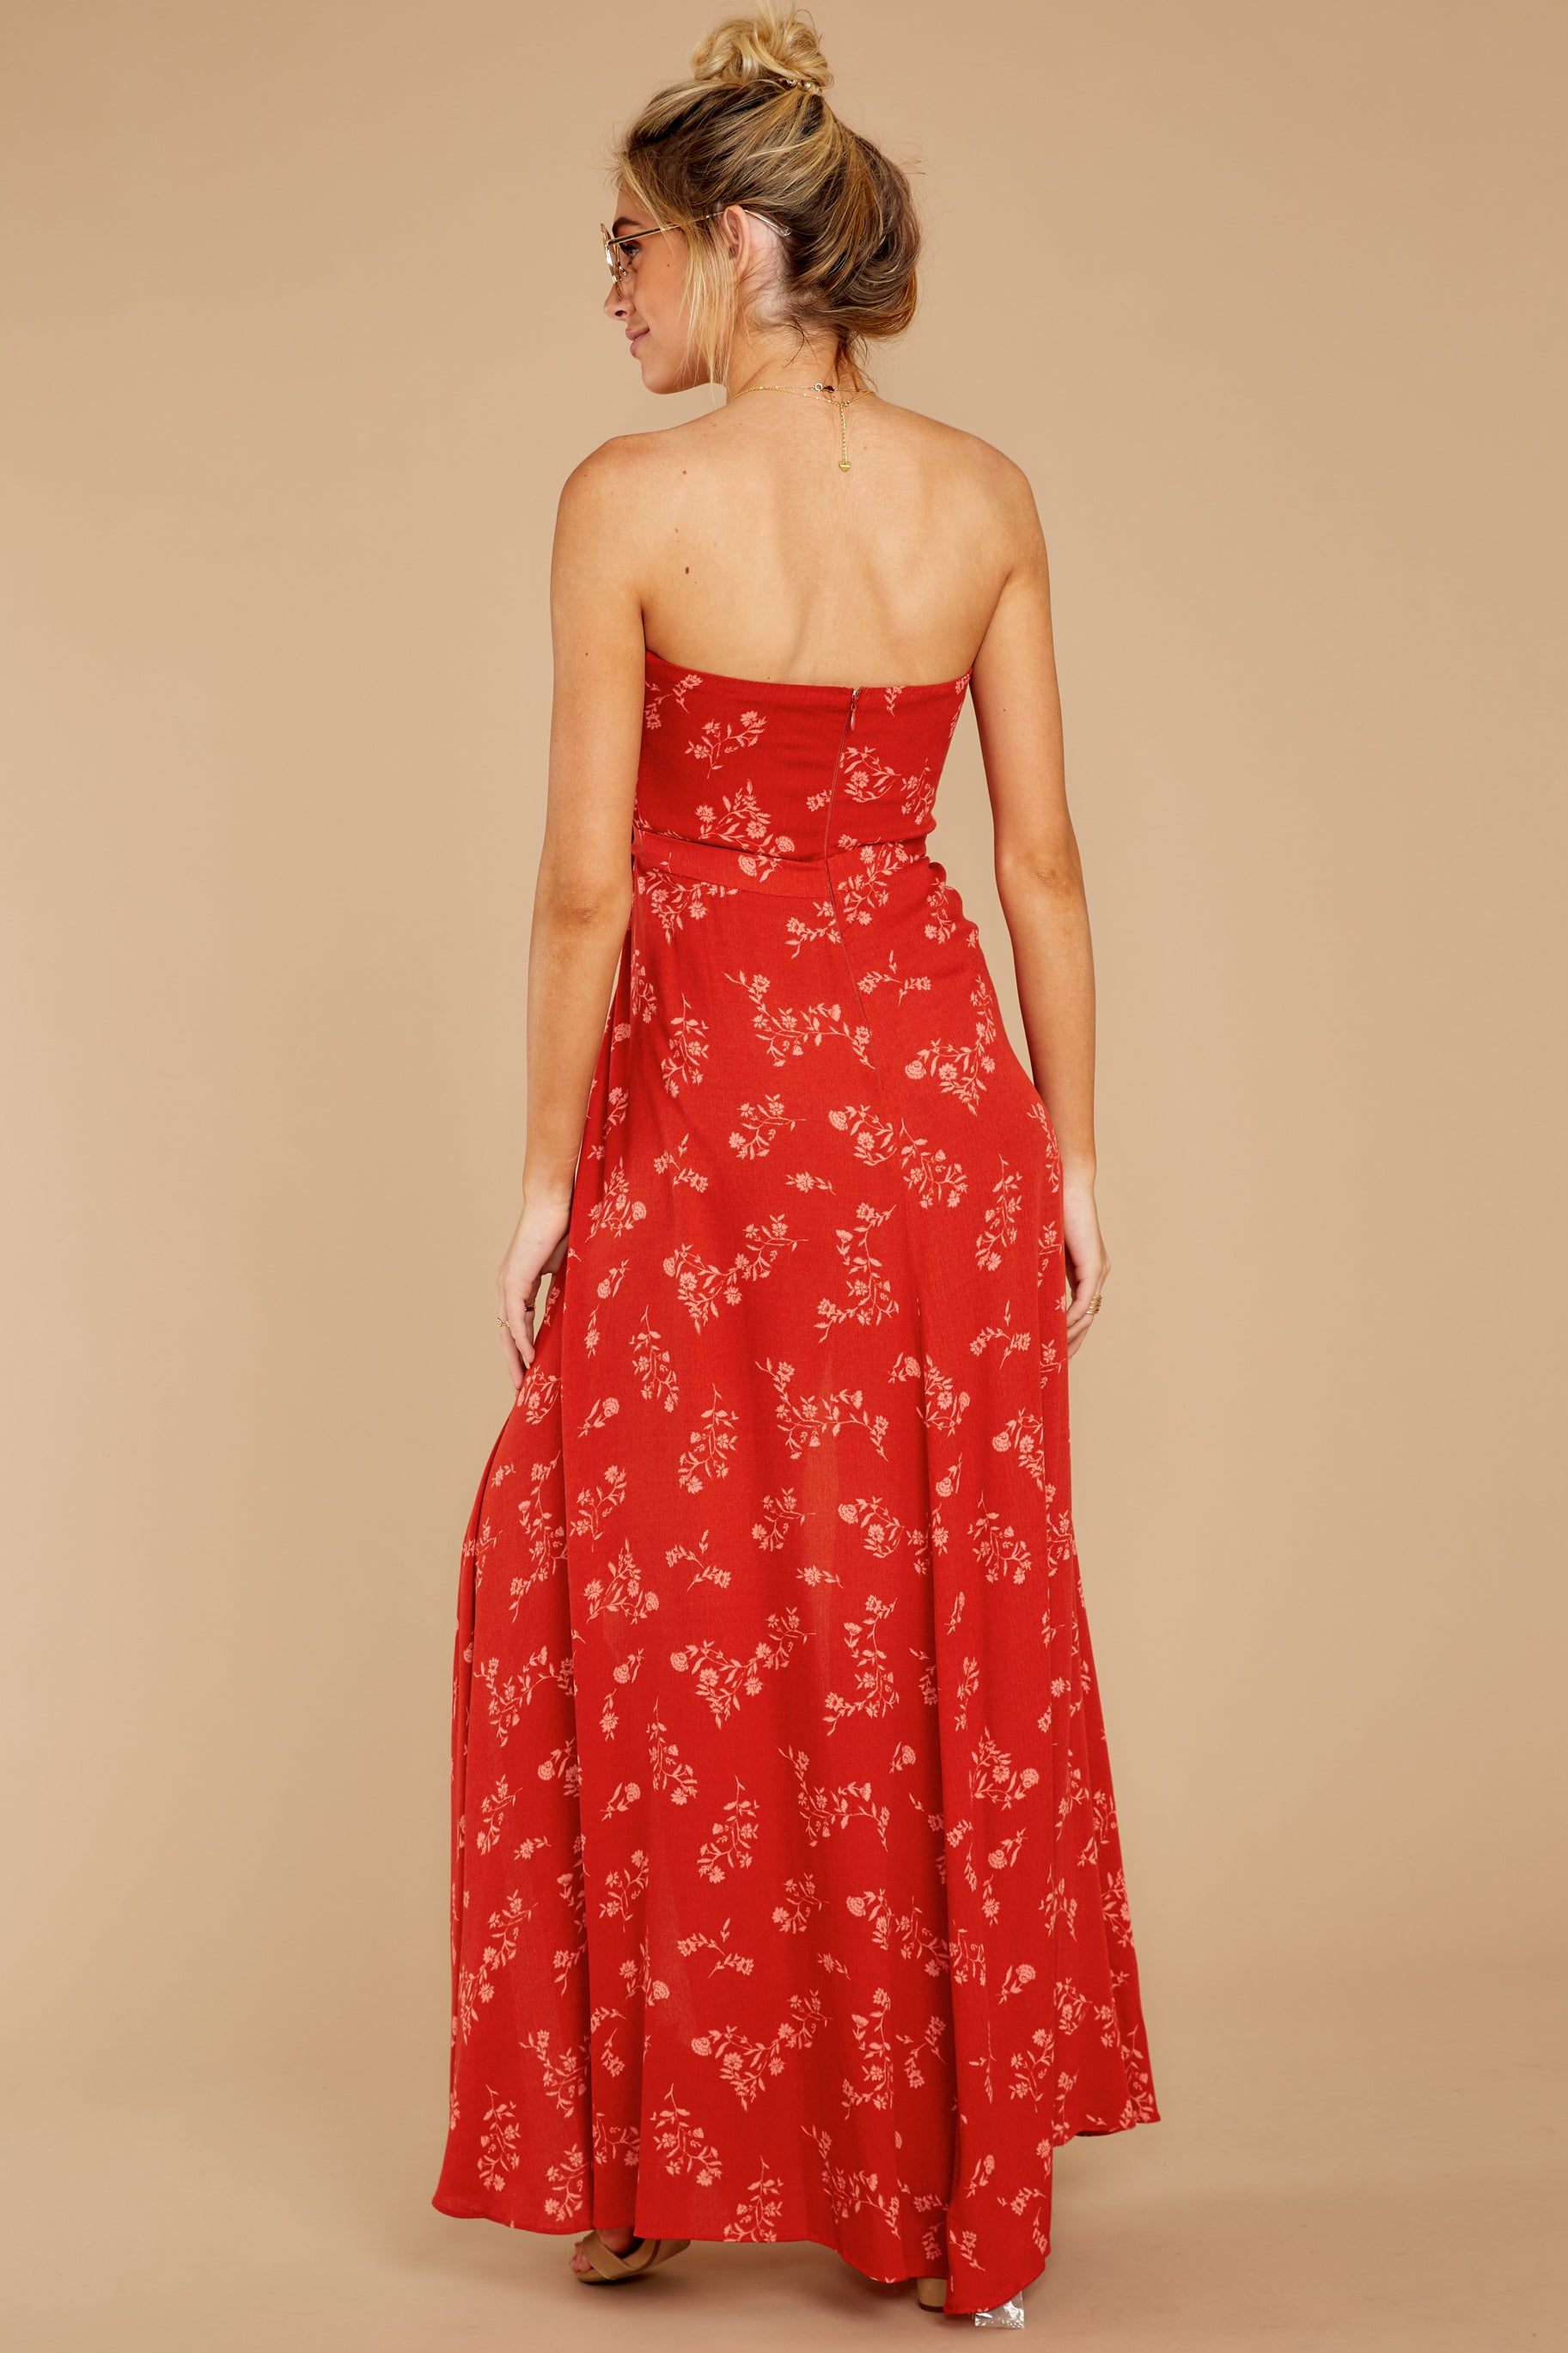 8 Forget Your Watch Rust Floral Print Maxi Dress at reddressboutique.com